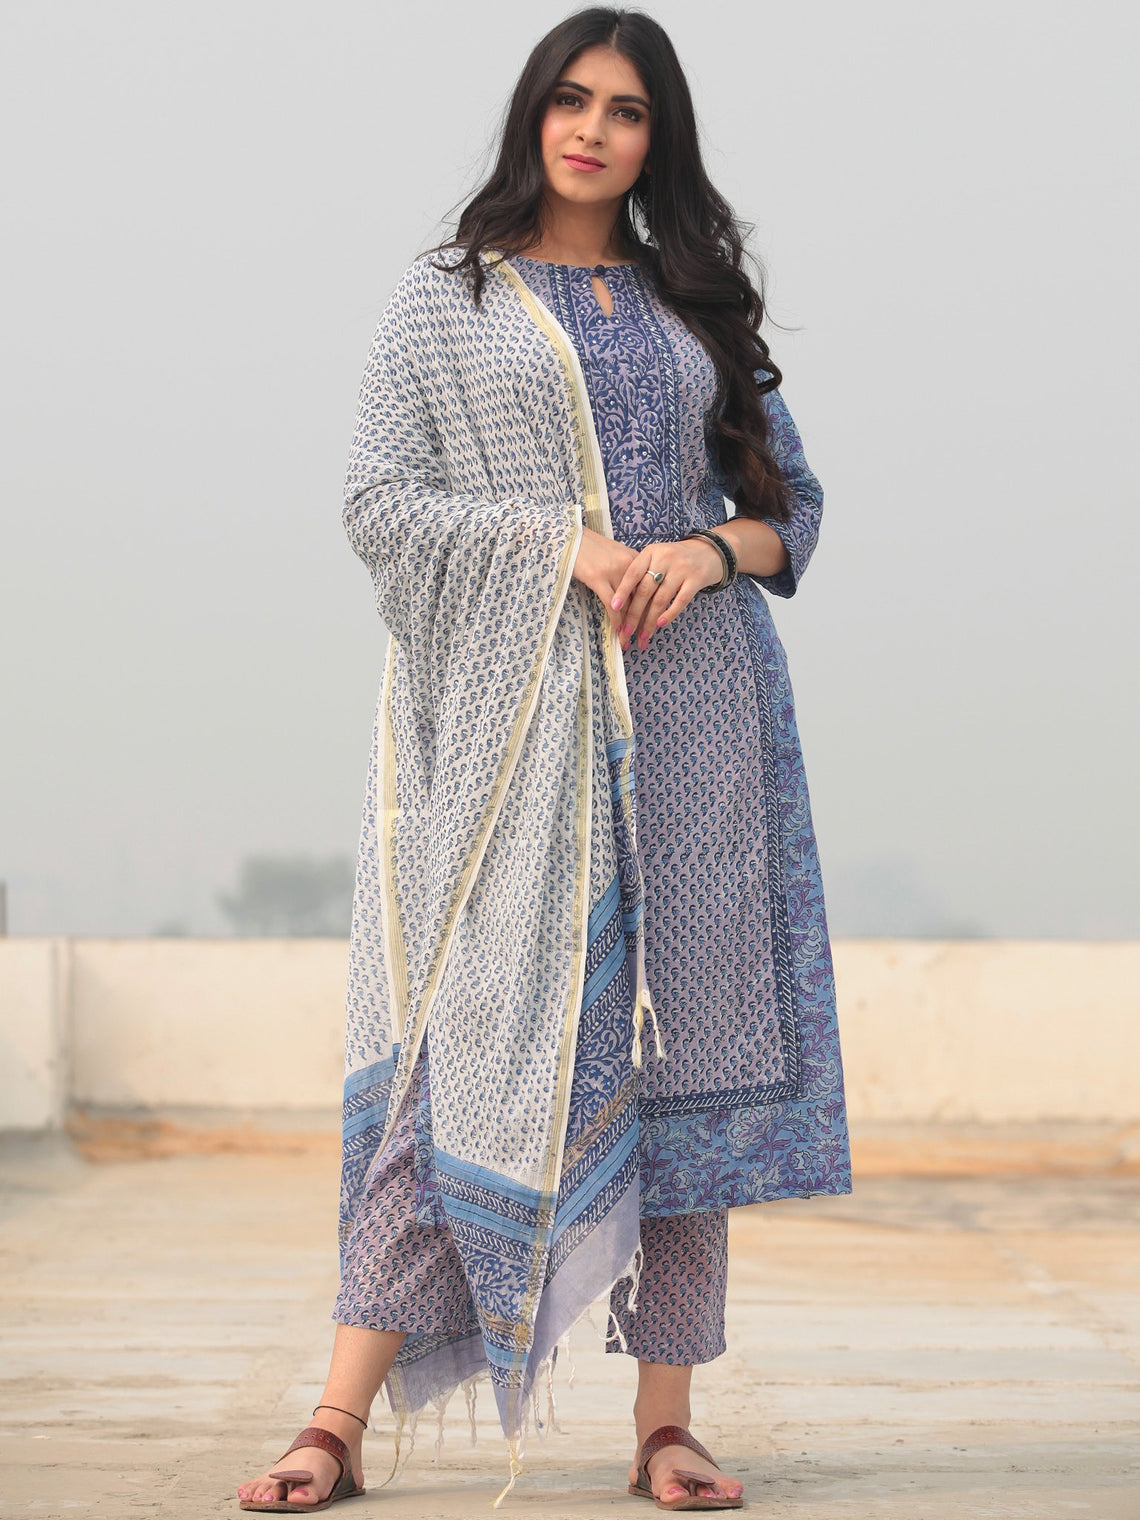 Jashn Samah - Set of Kurta Pants & Dupatta - KS76A2366D